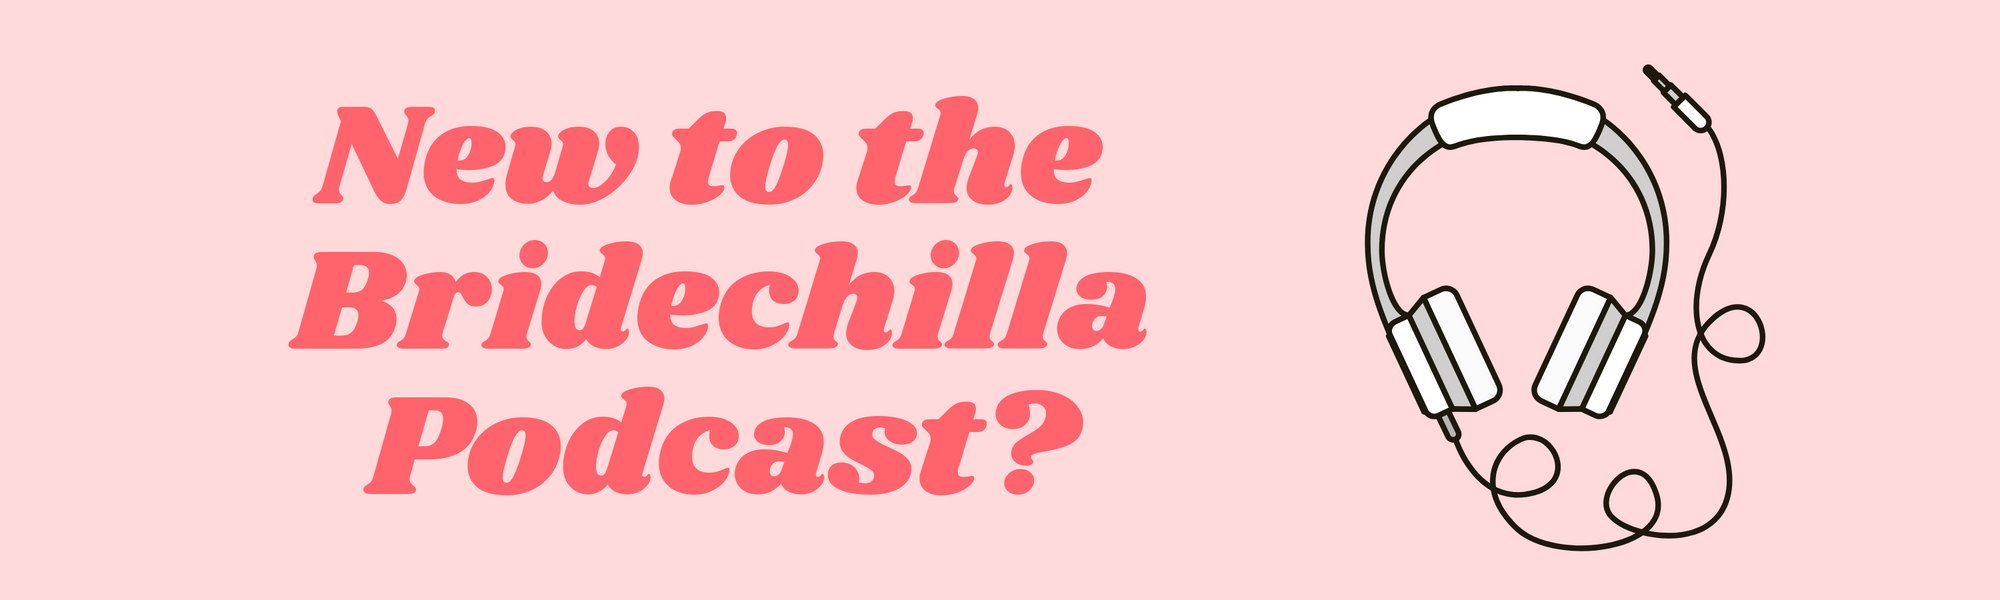 New to The Bridechilla Podcast?